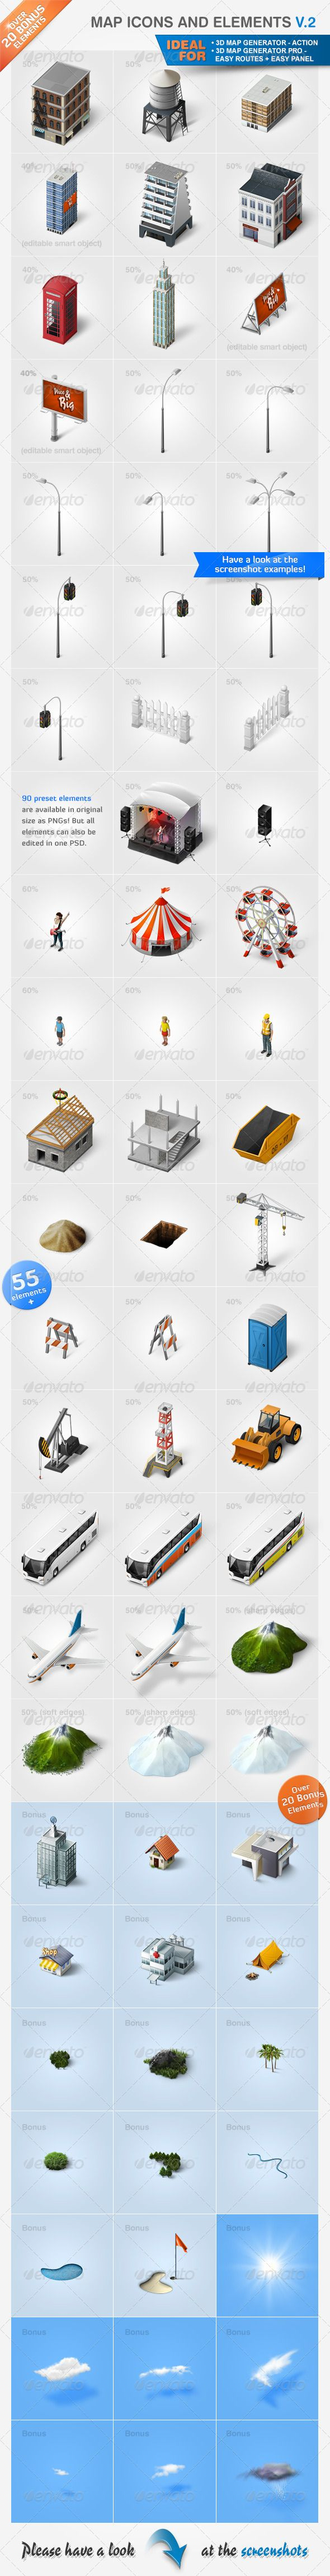 Map Icons and Elements - V.2 - Miscellaneous #Icons Download here: https://graphicriver.net/item/map-icons-and-elements-v2/2930212?ref=alena994